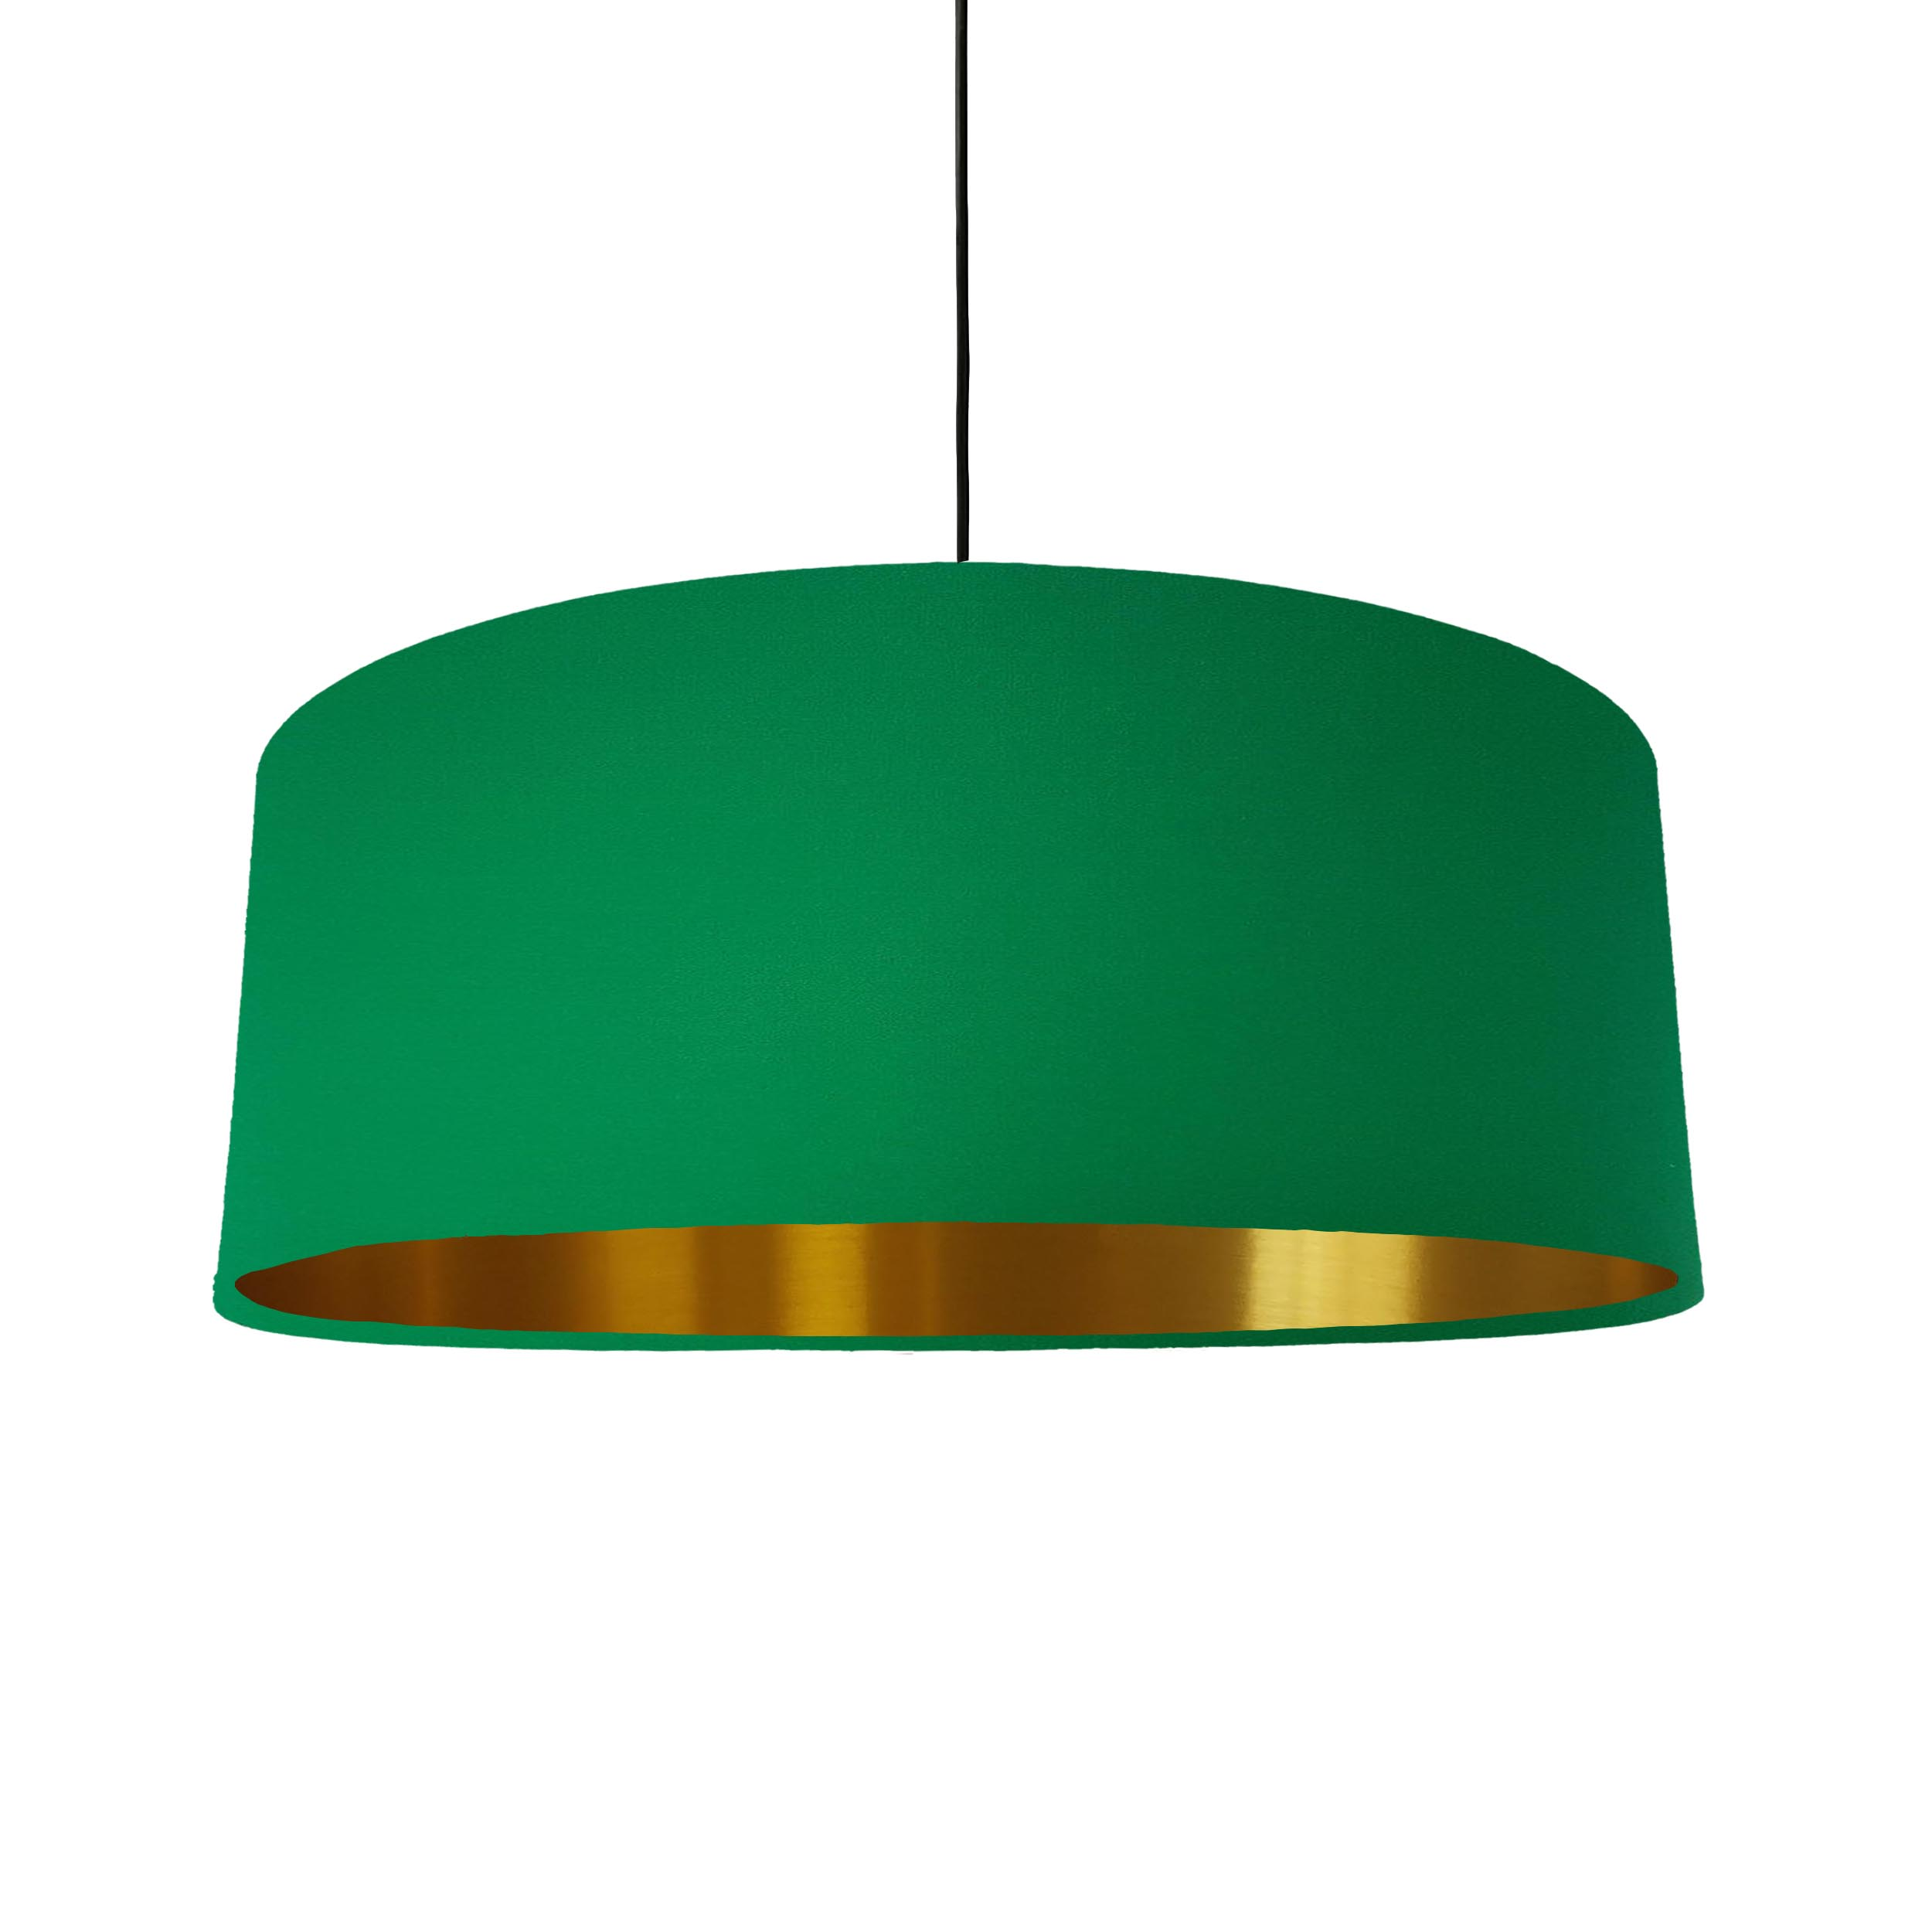 Extra Large Lampshade in Emerald Green Cotton and a Brushed Gold Lining